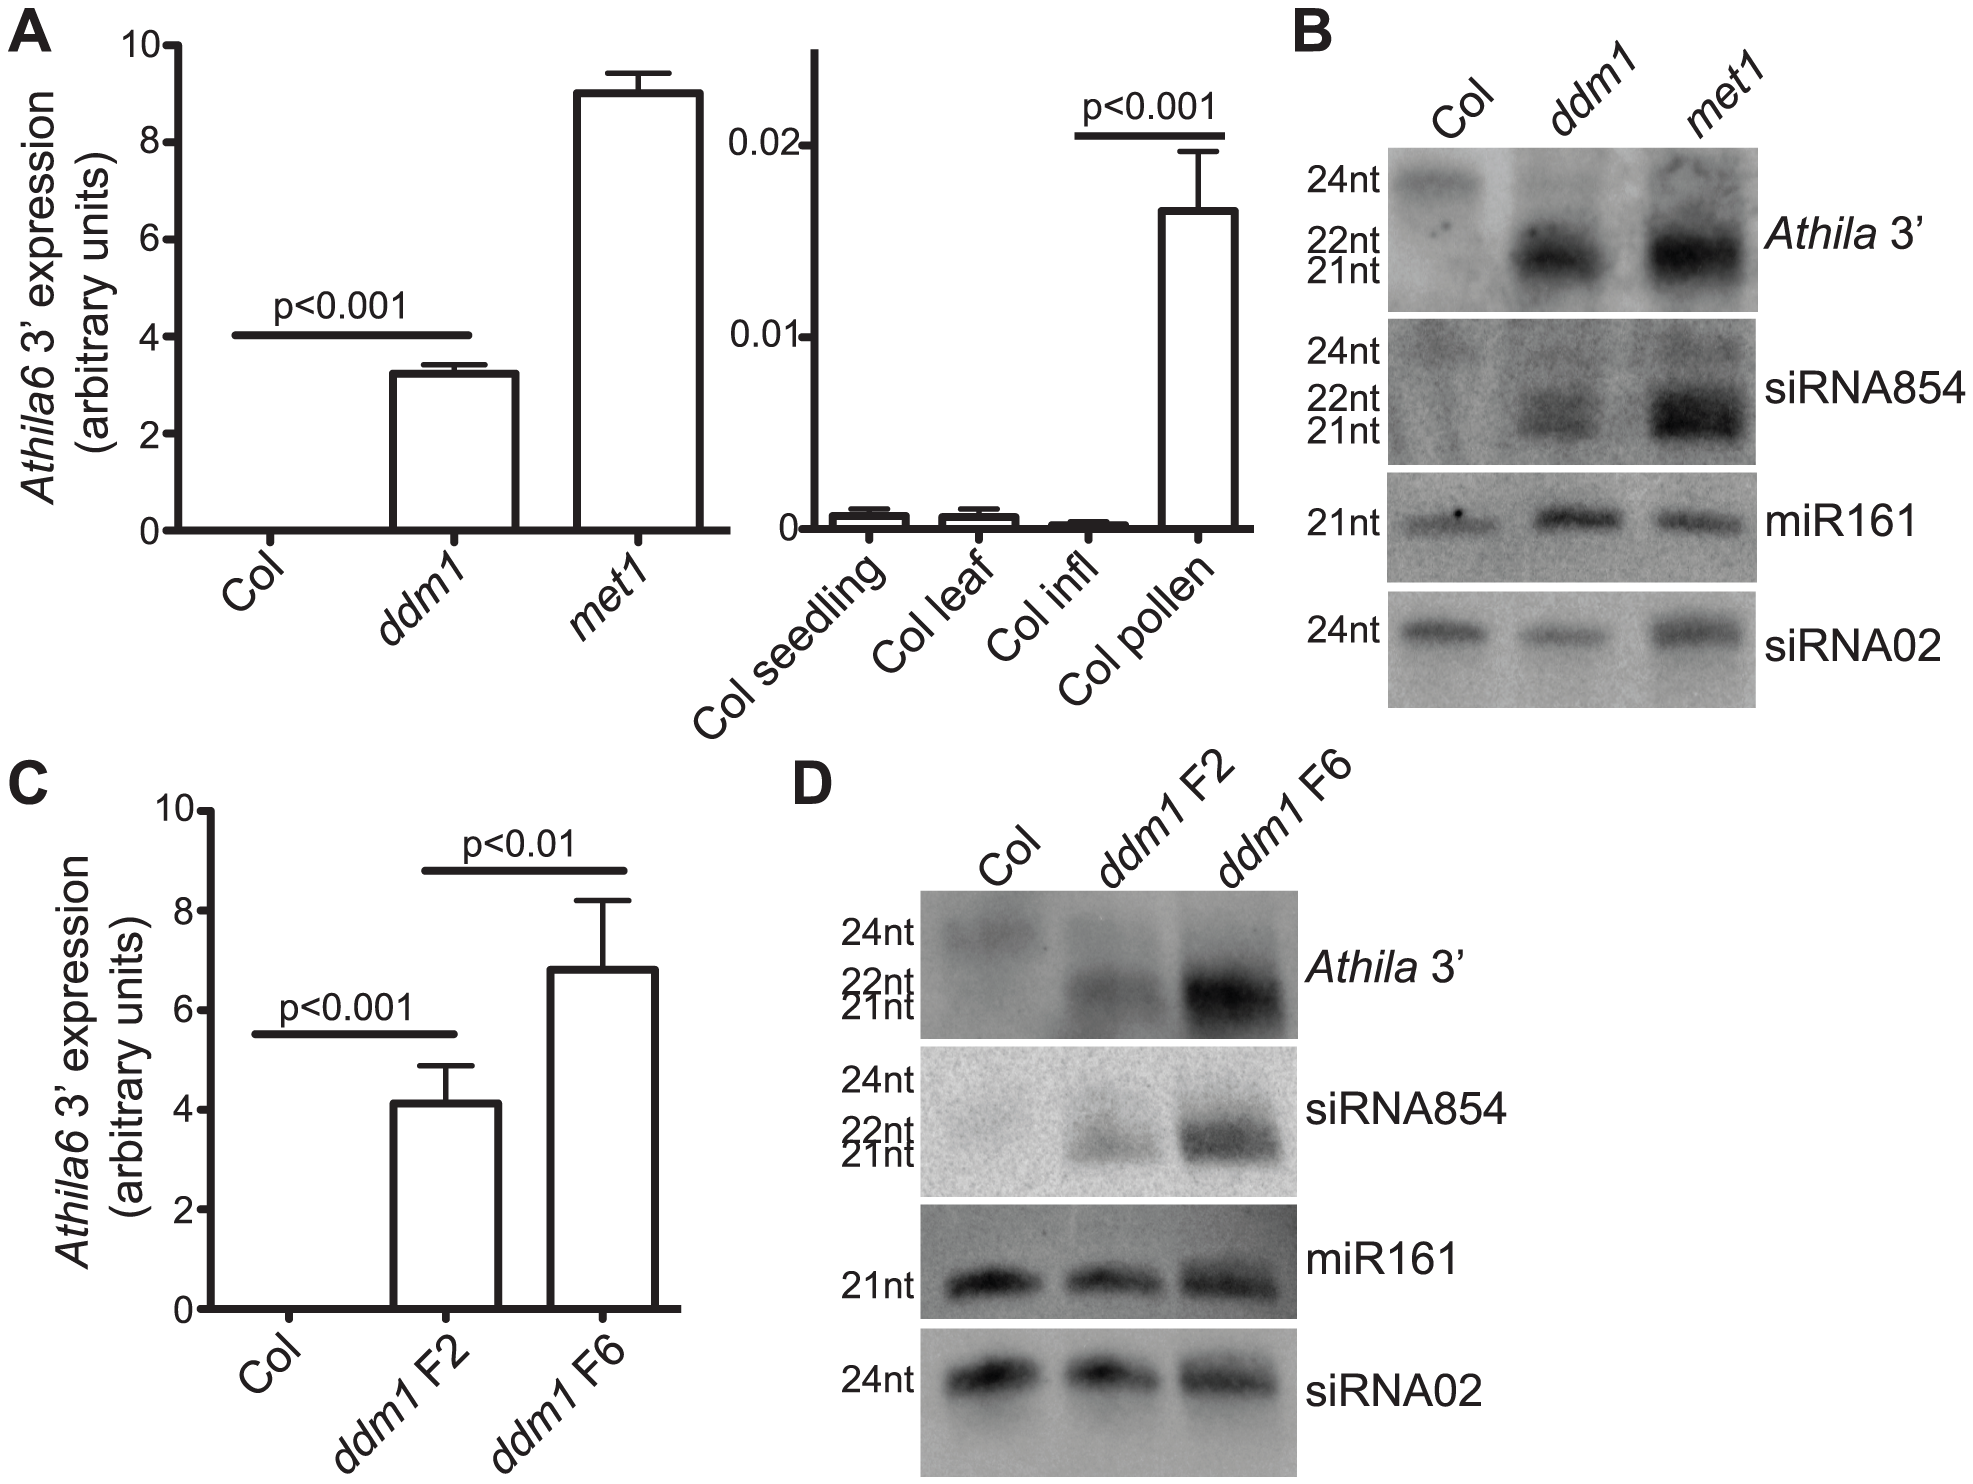 Expression of the <i>Athila6</i> retrotransposon leads to accumulation of <i>Athila</i> 21–22 nt siRNAs, including siRNA854.